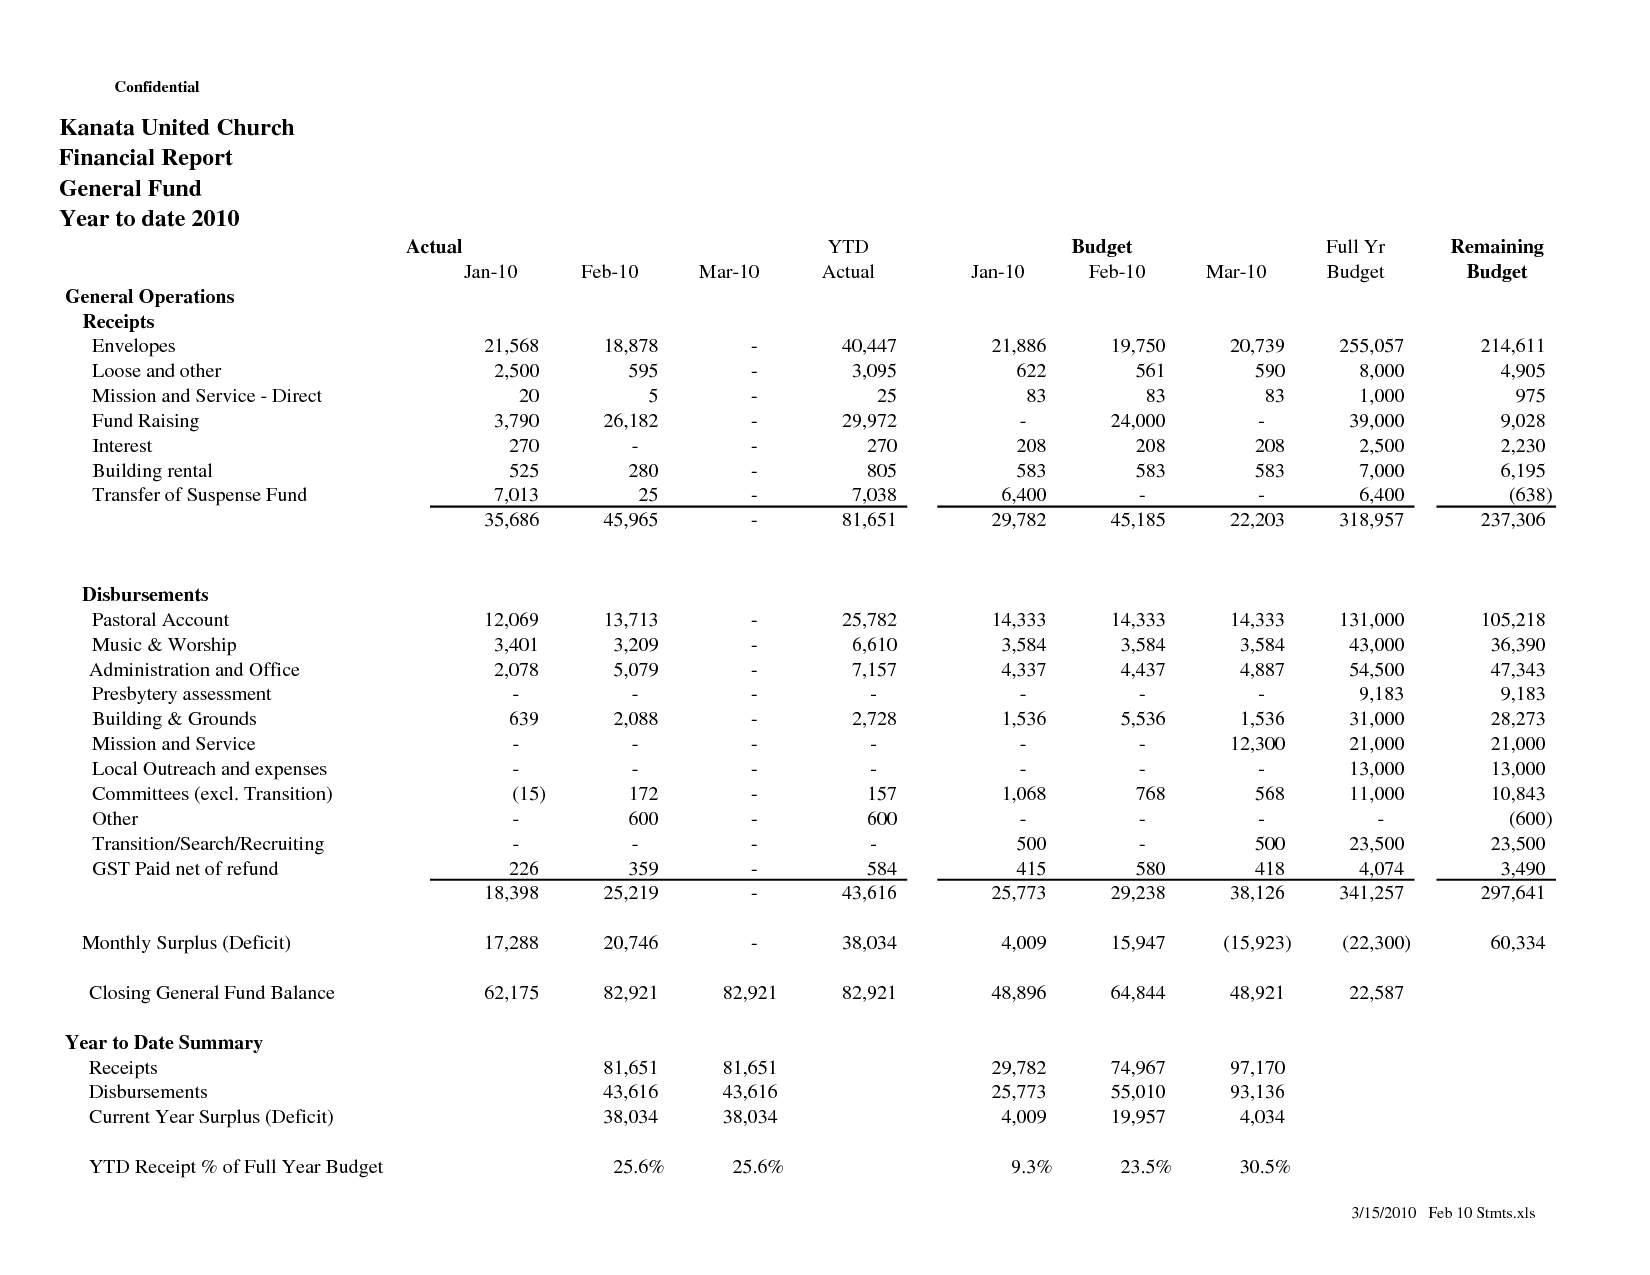 Sample Church Financial Statement Report  Kanata United Church